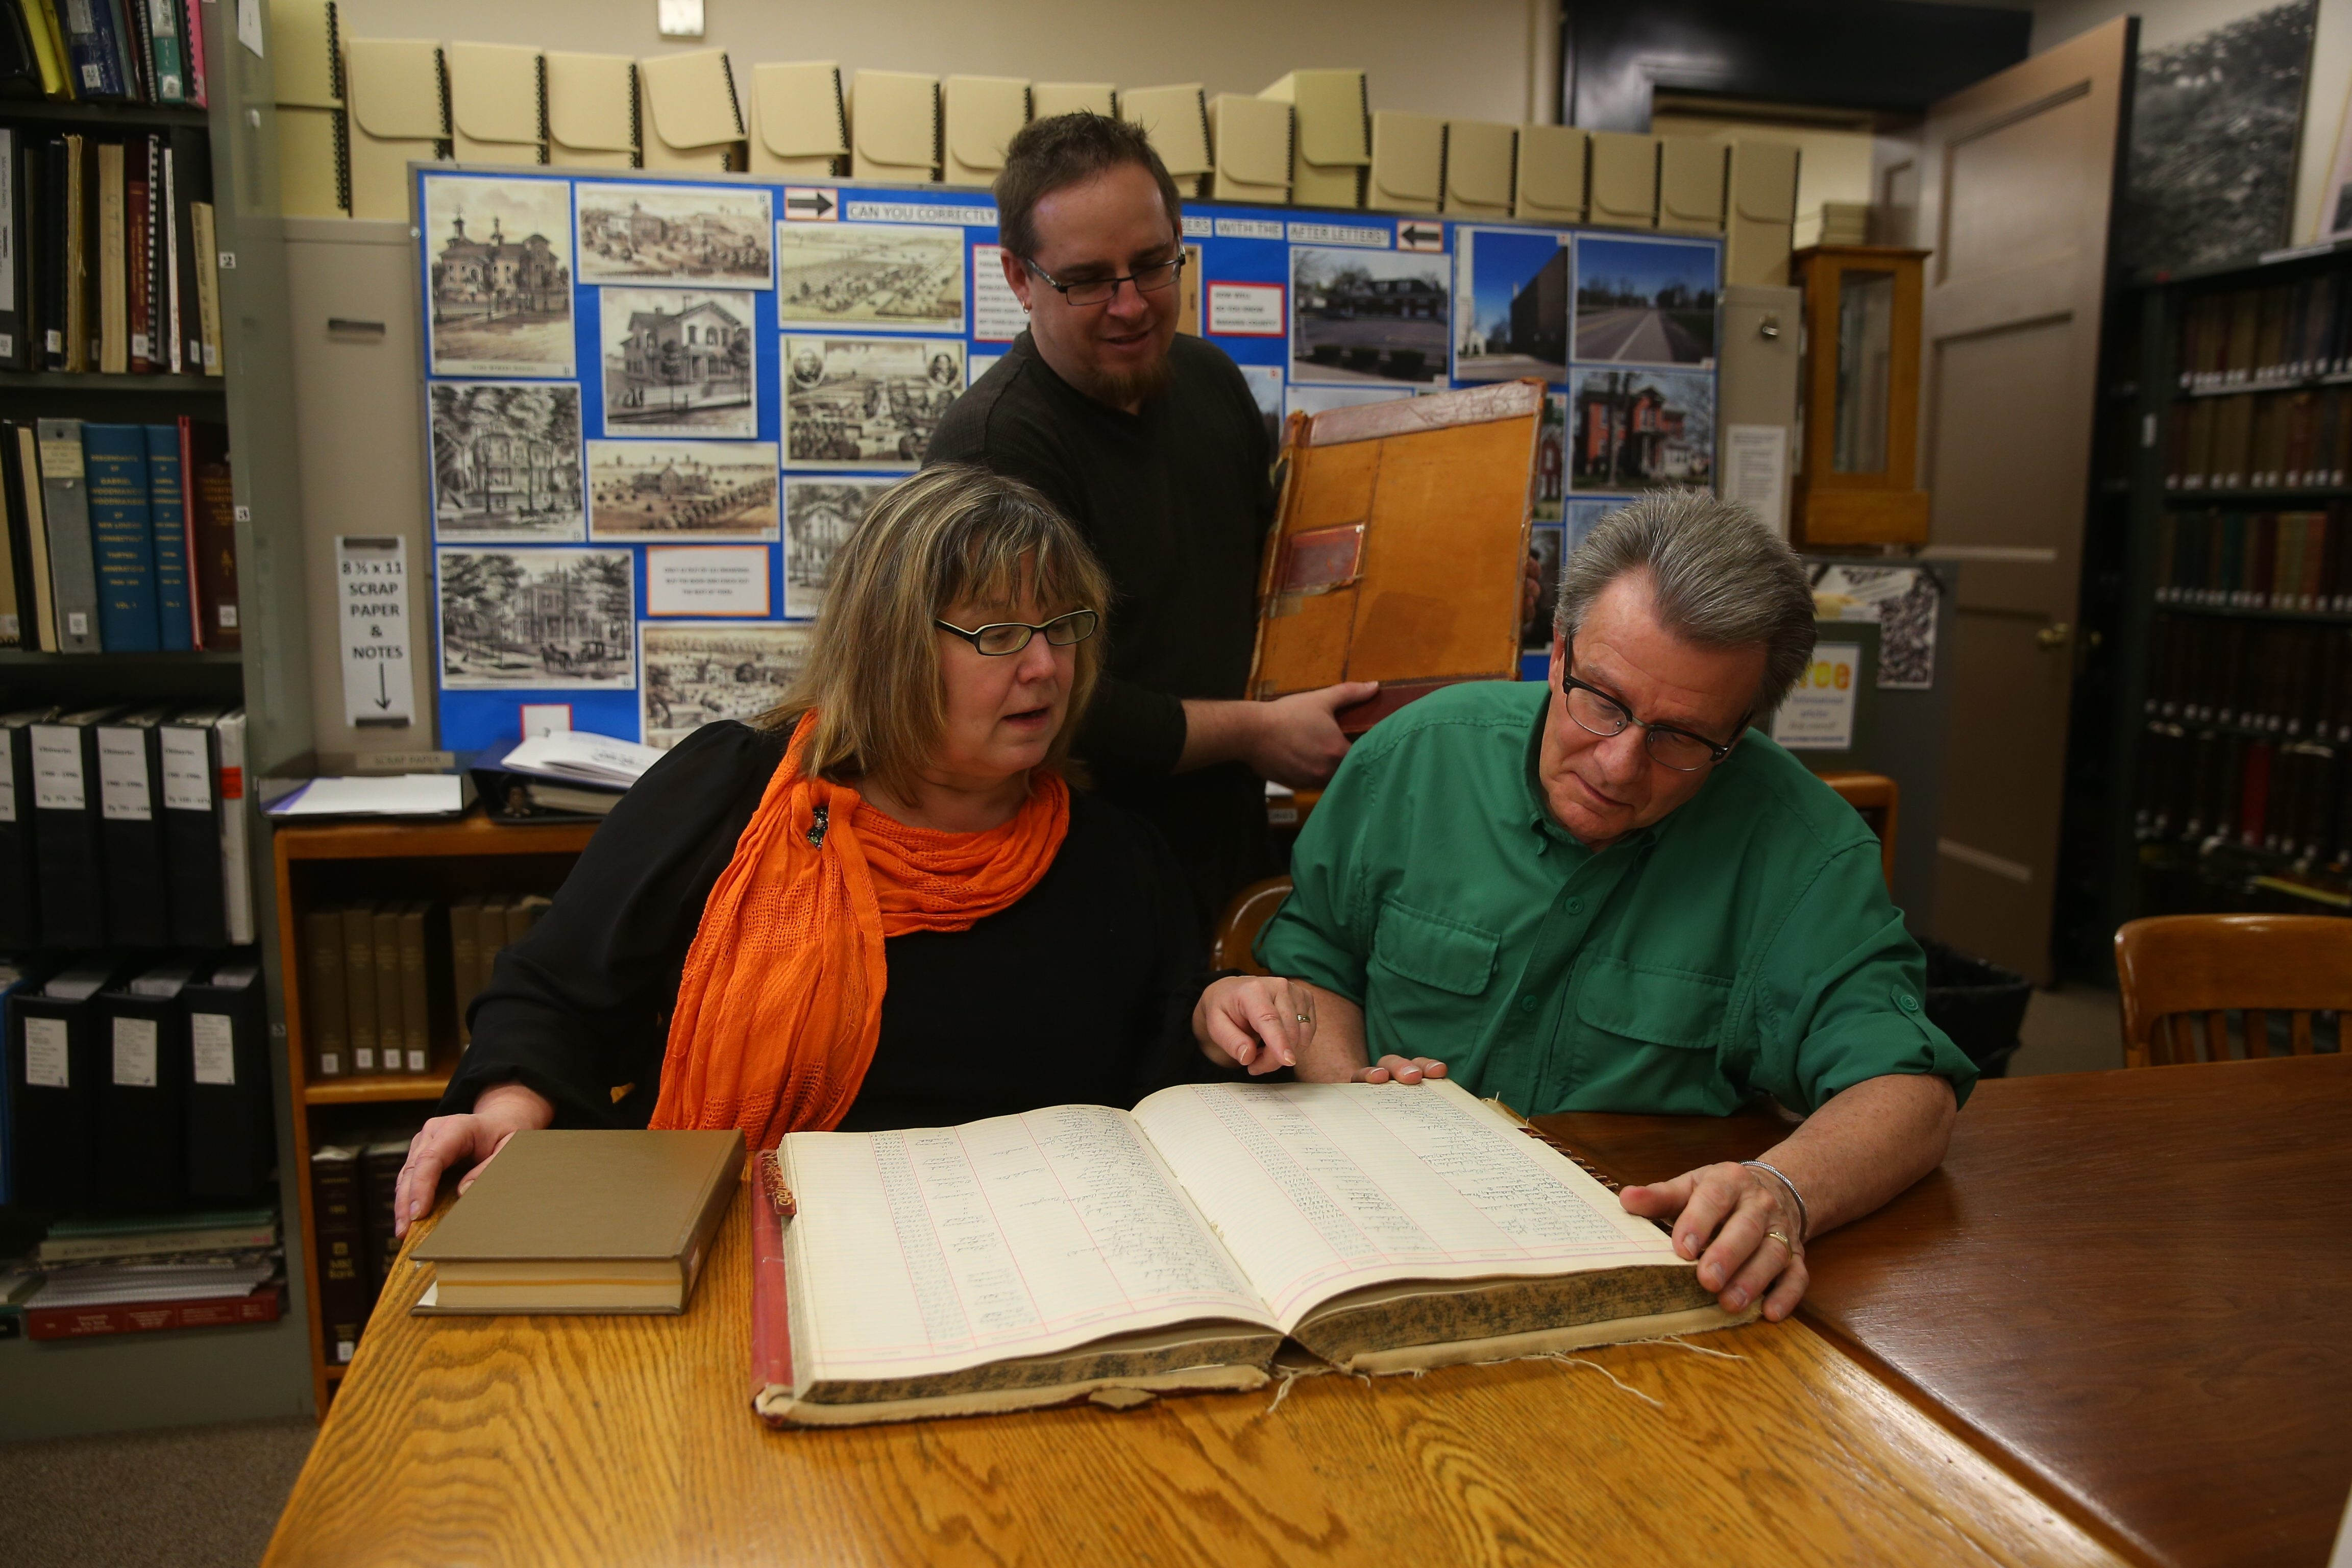 Catherine Emerson, left, historian, with deputies Ronald Cary, right and Craig Bacon, center peruse some of the genealogical resources available in the Niagara County Historian's Office, in the  Niagara County Clerk's Building in Lockport.